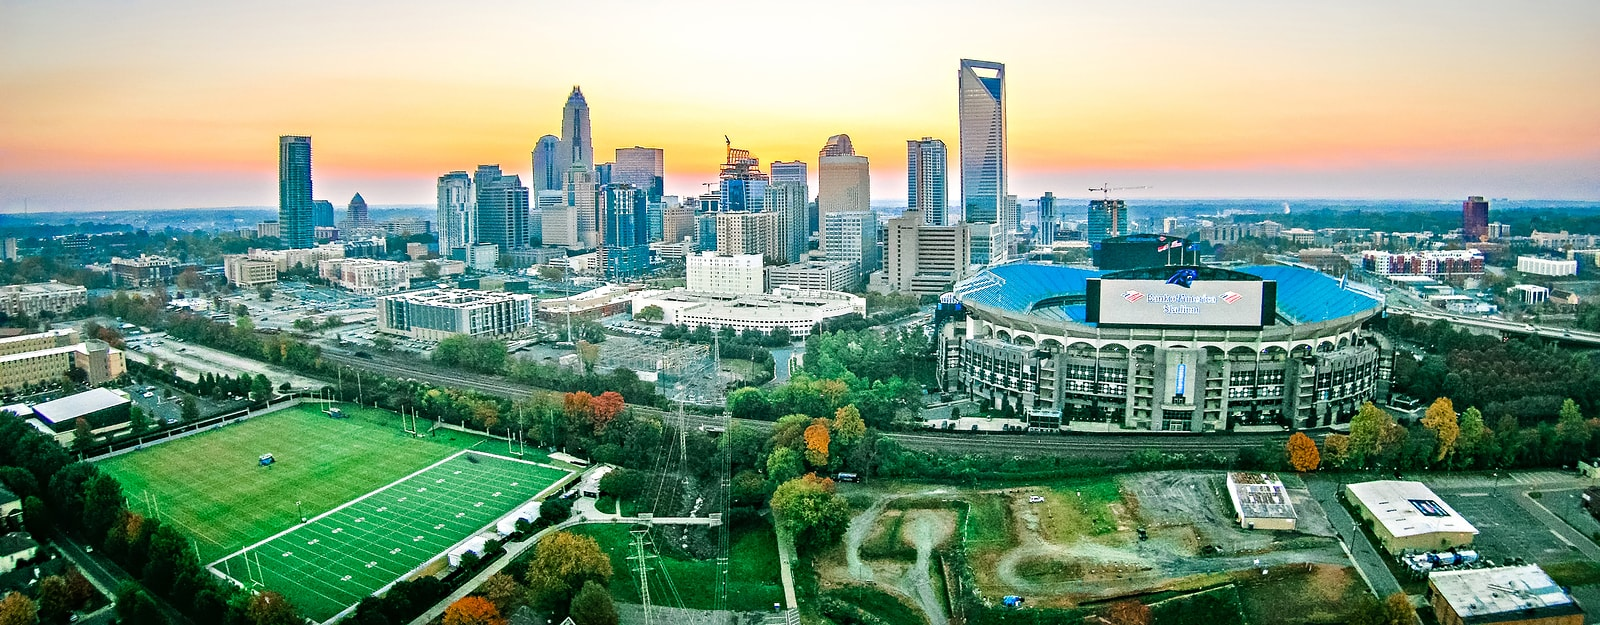 charlotte nc background min   Air Components 1600x625